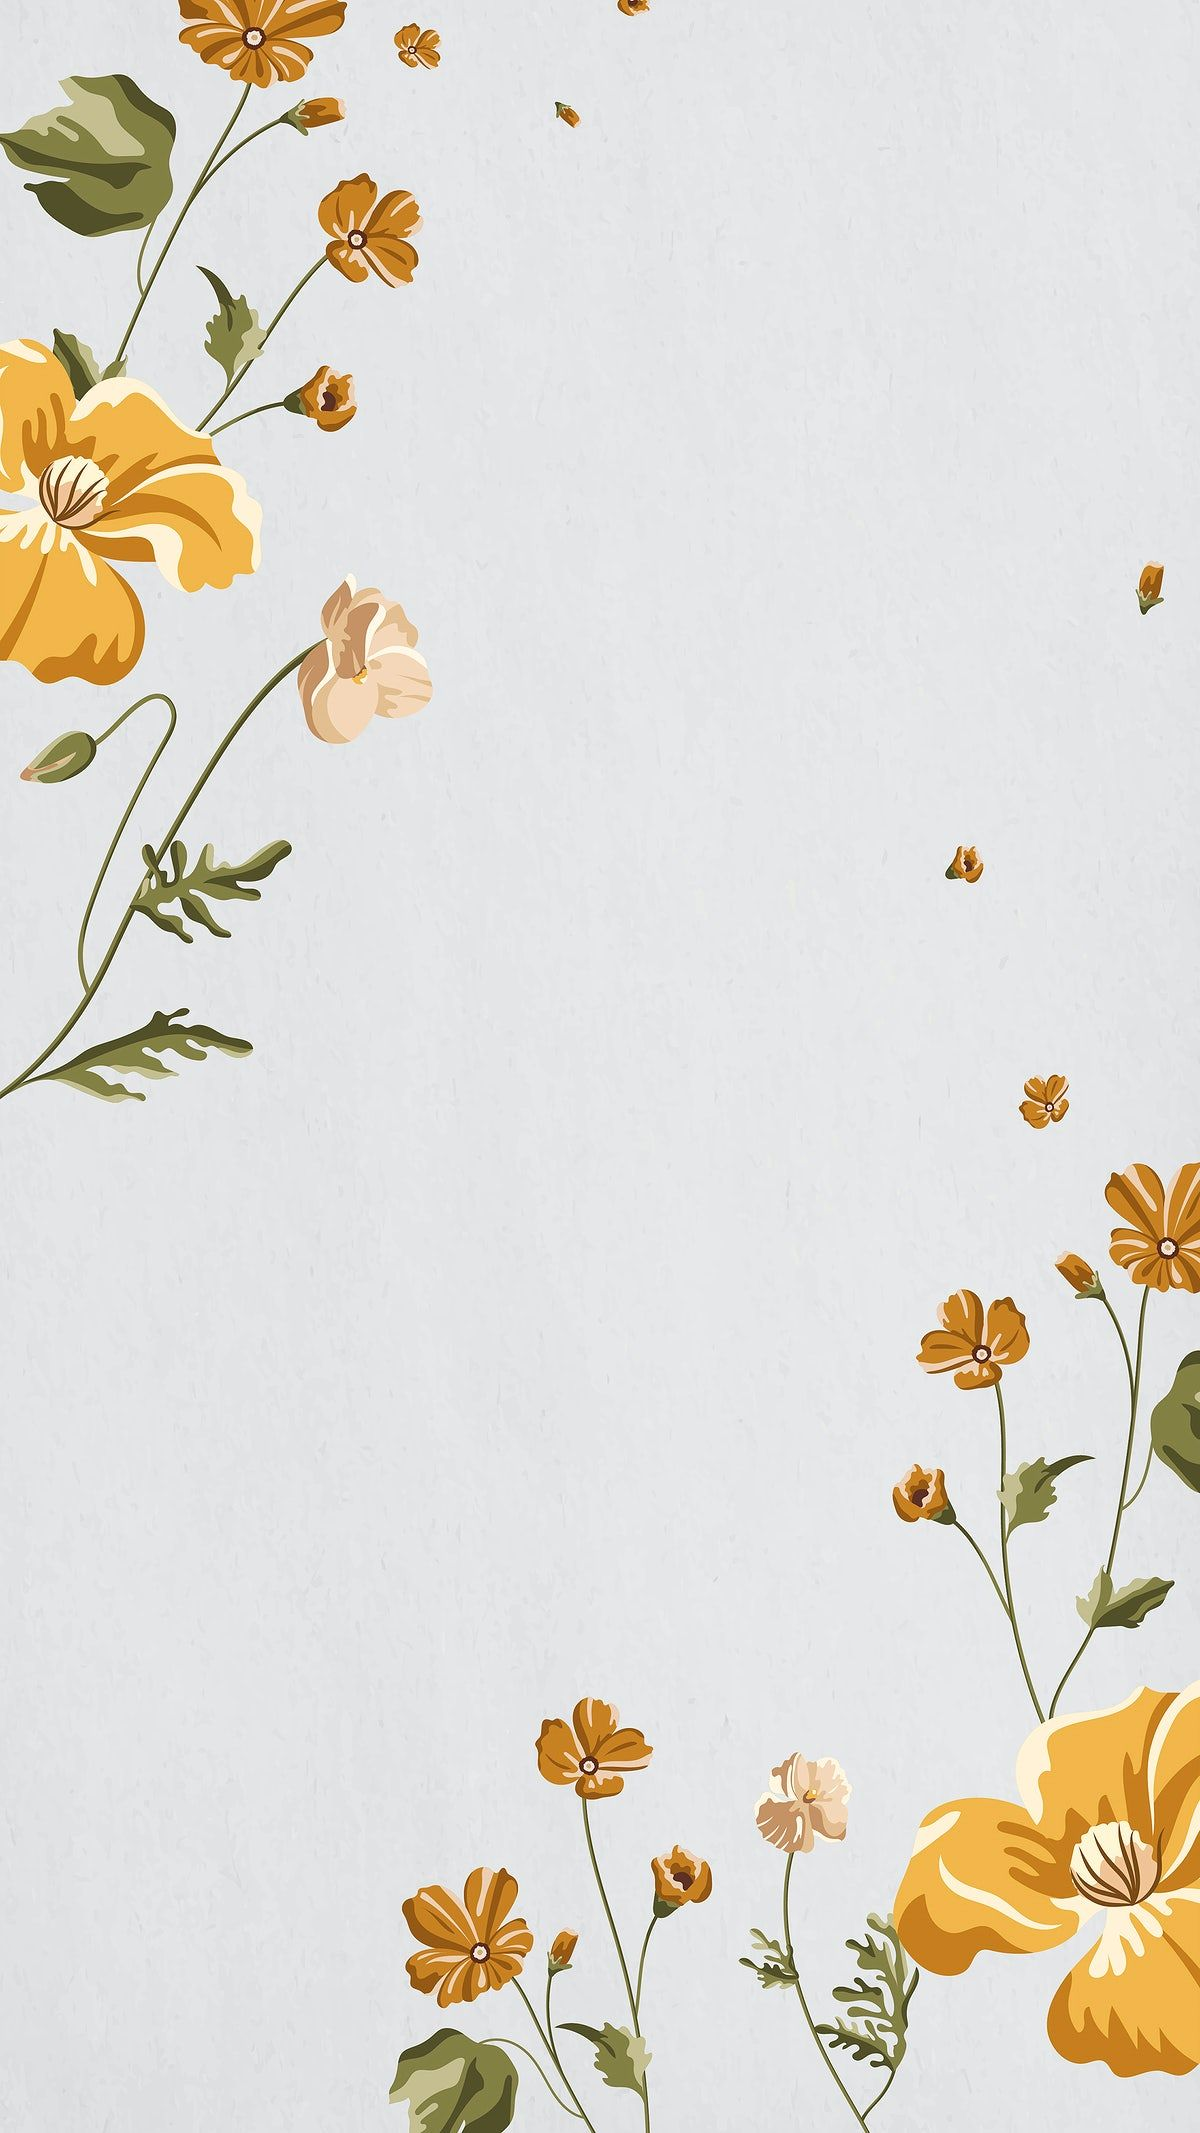 Download premium vector of Yellow flower on a gray background with copy space vector by Aew about story, floral phone background, Floral mobile phone screen, background blooming, and android wallpaper 2273282